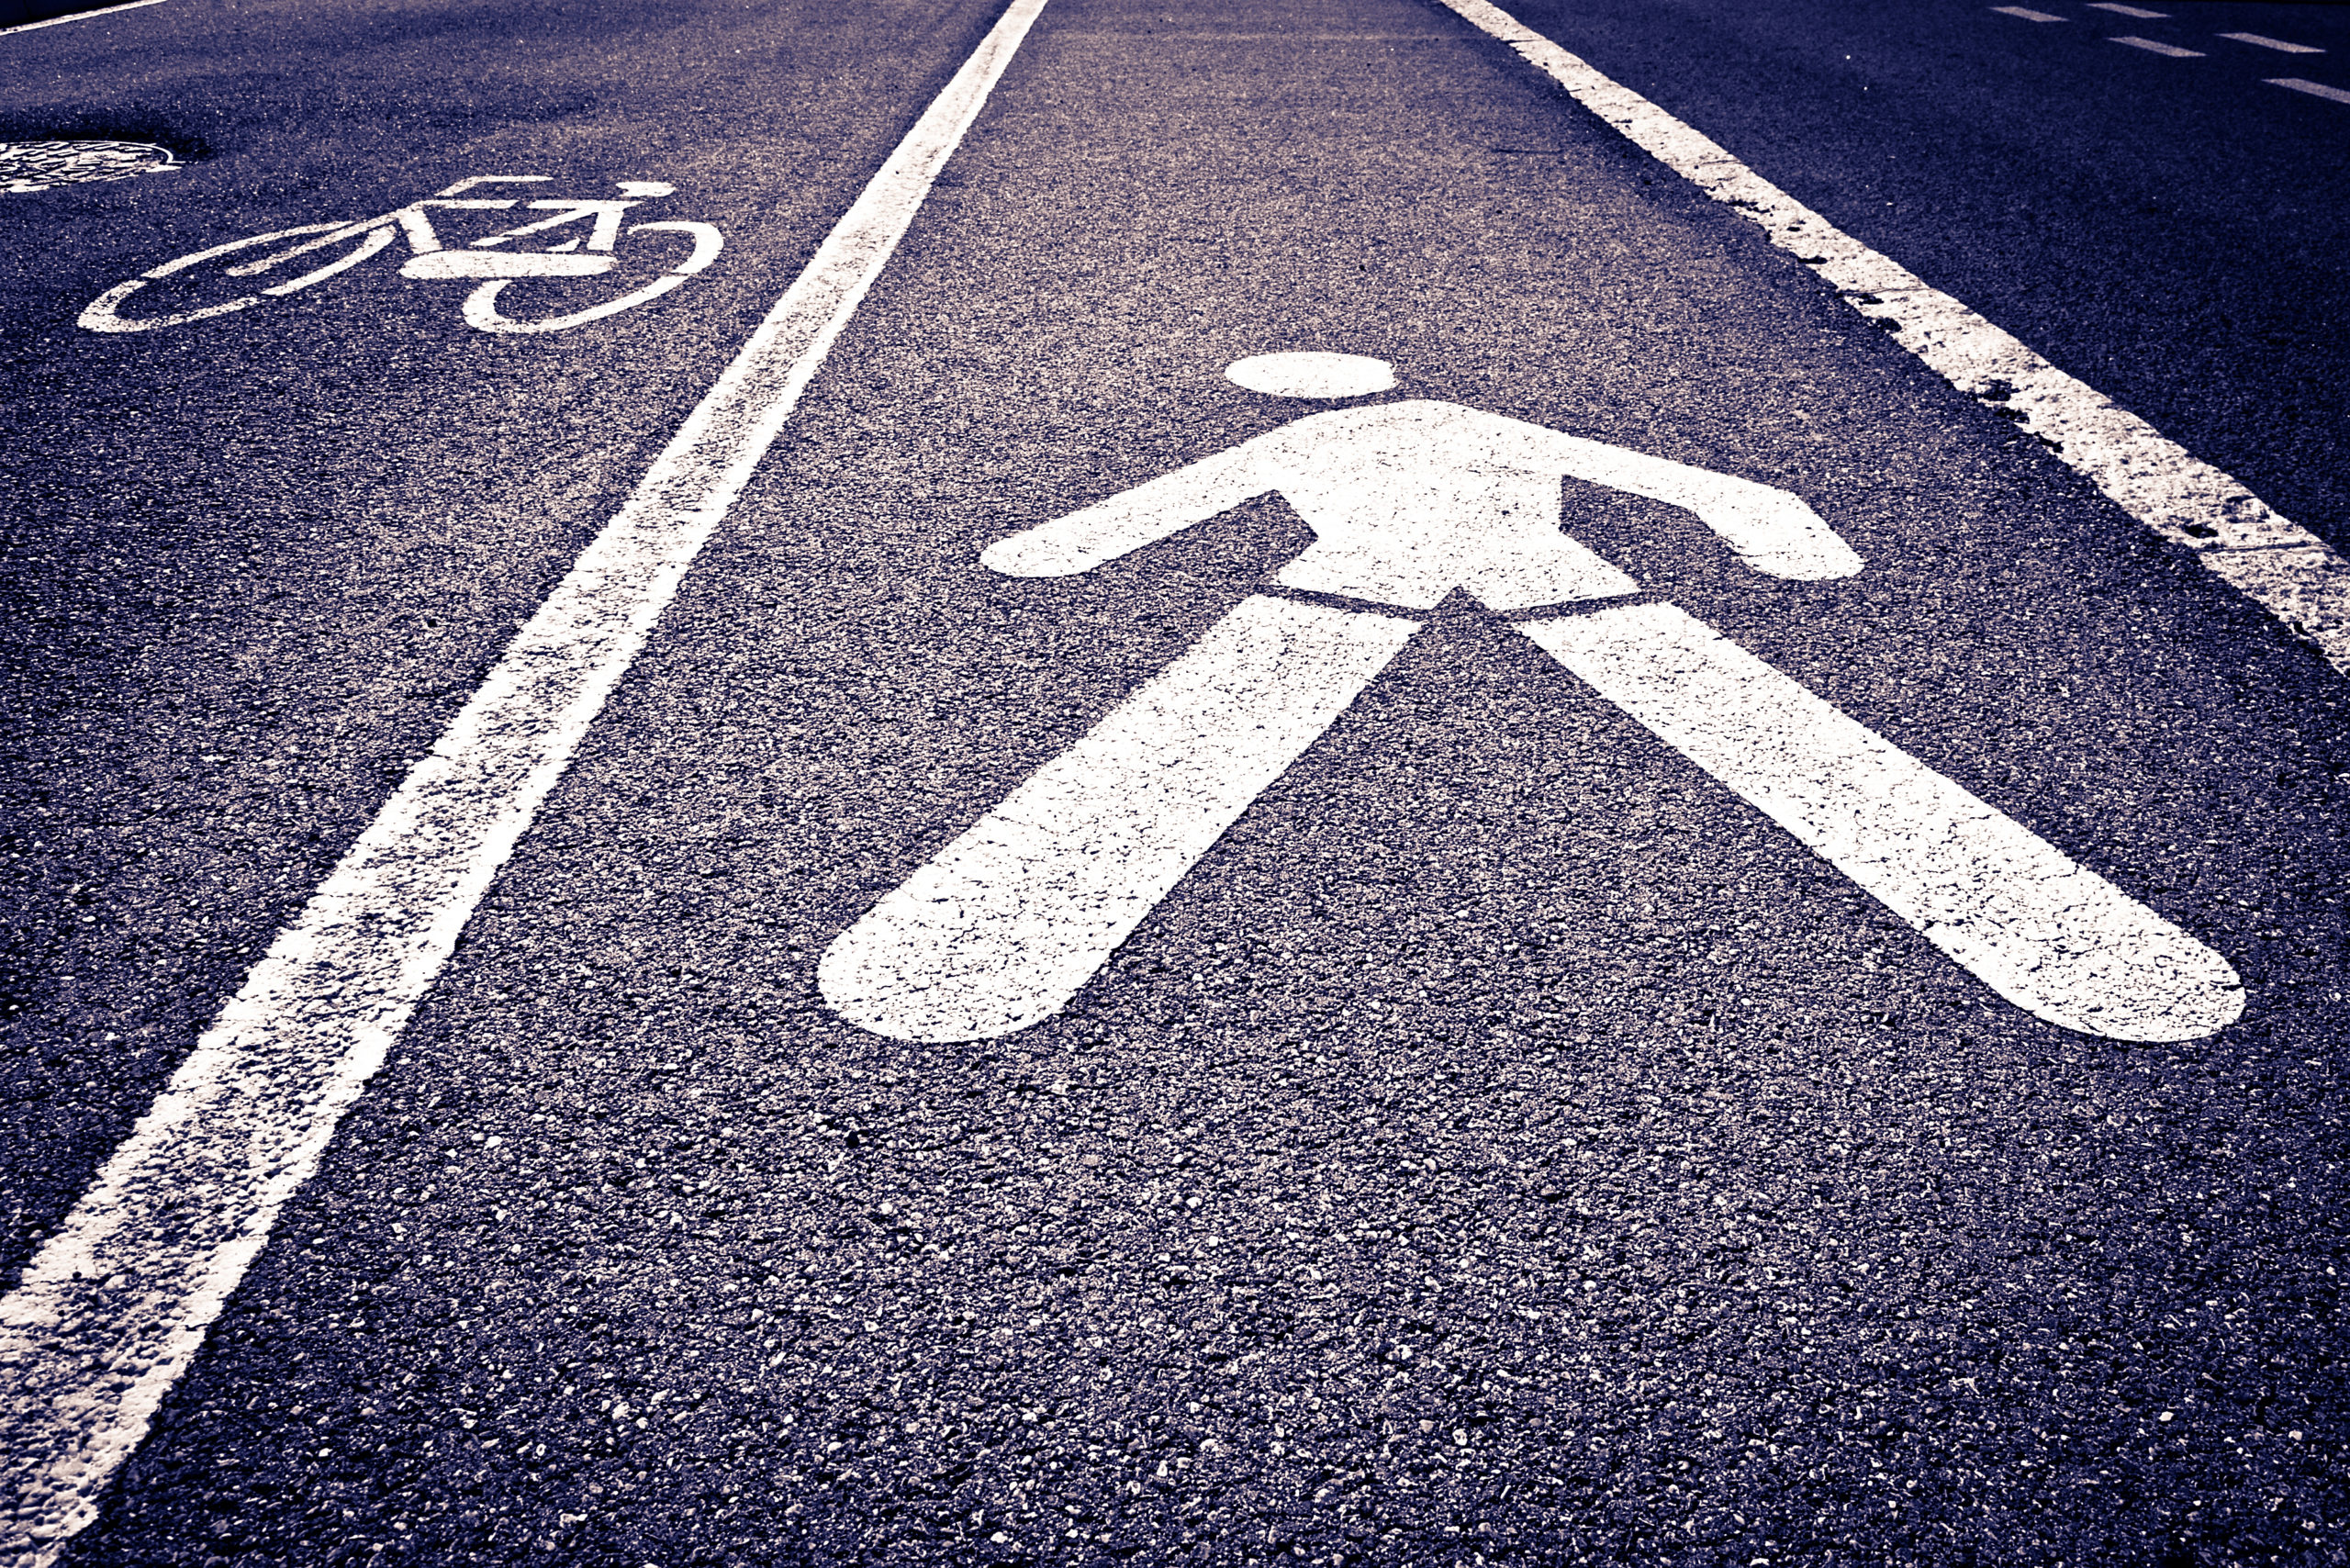 pedestrian and bicycle lanes